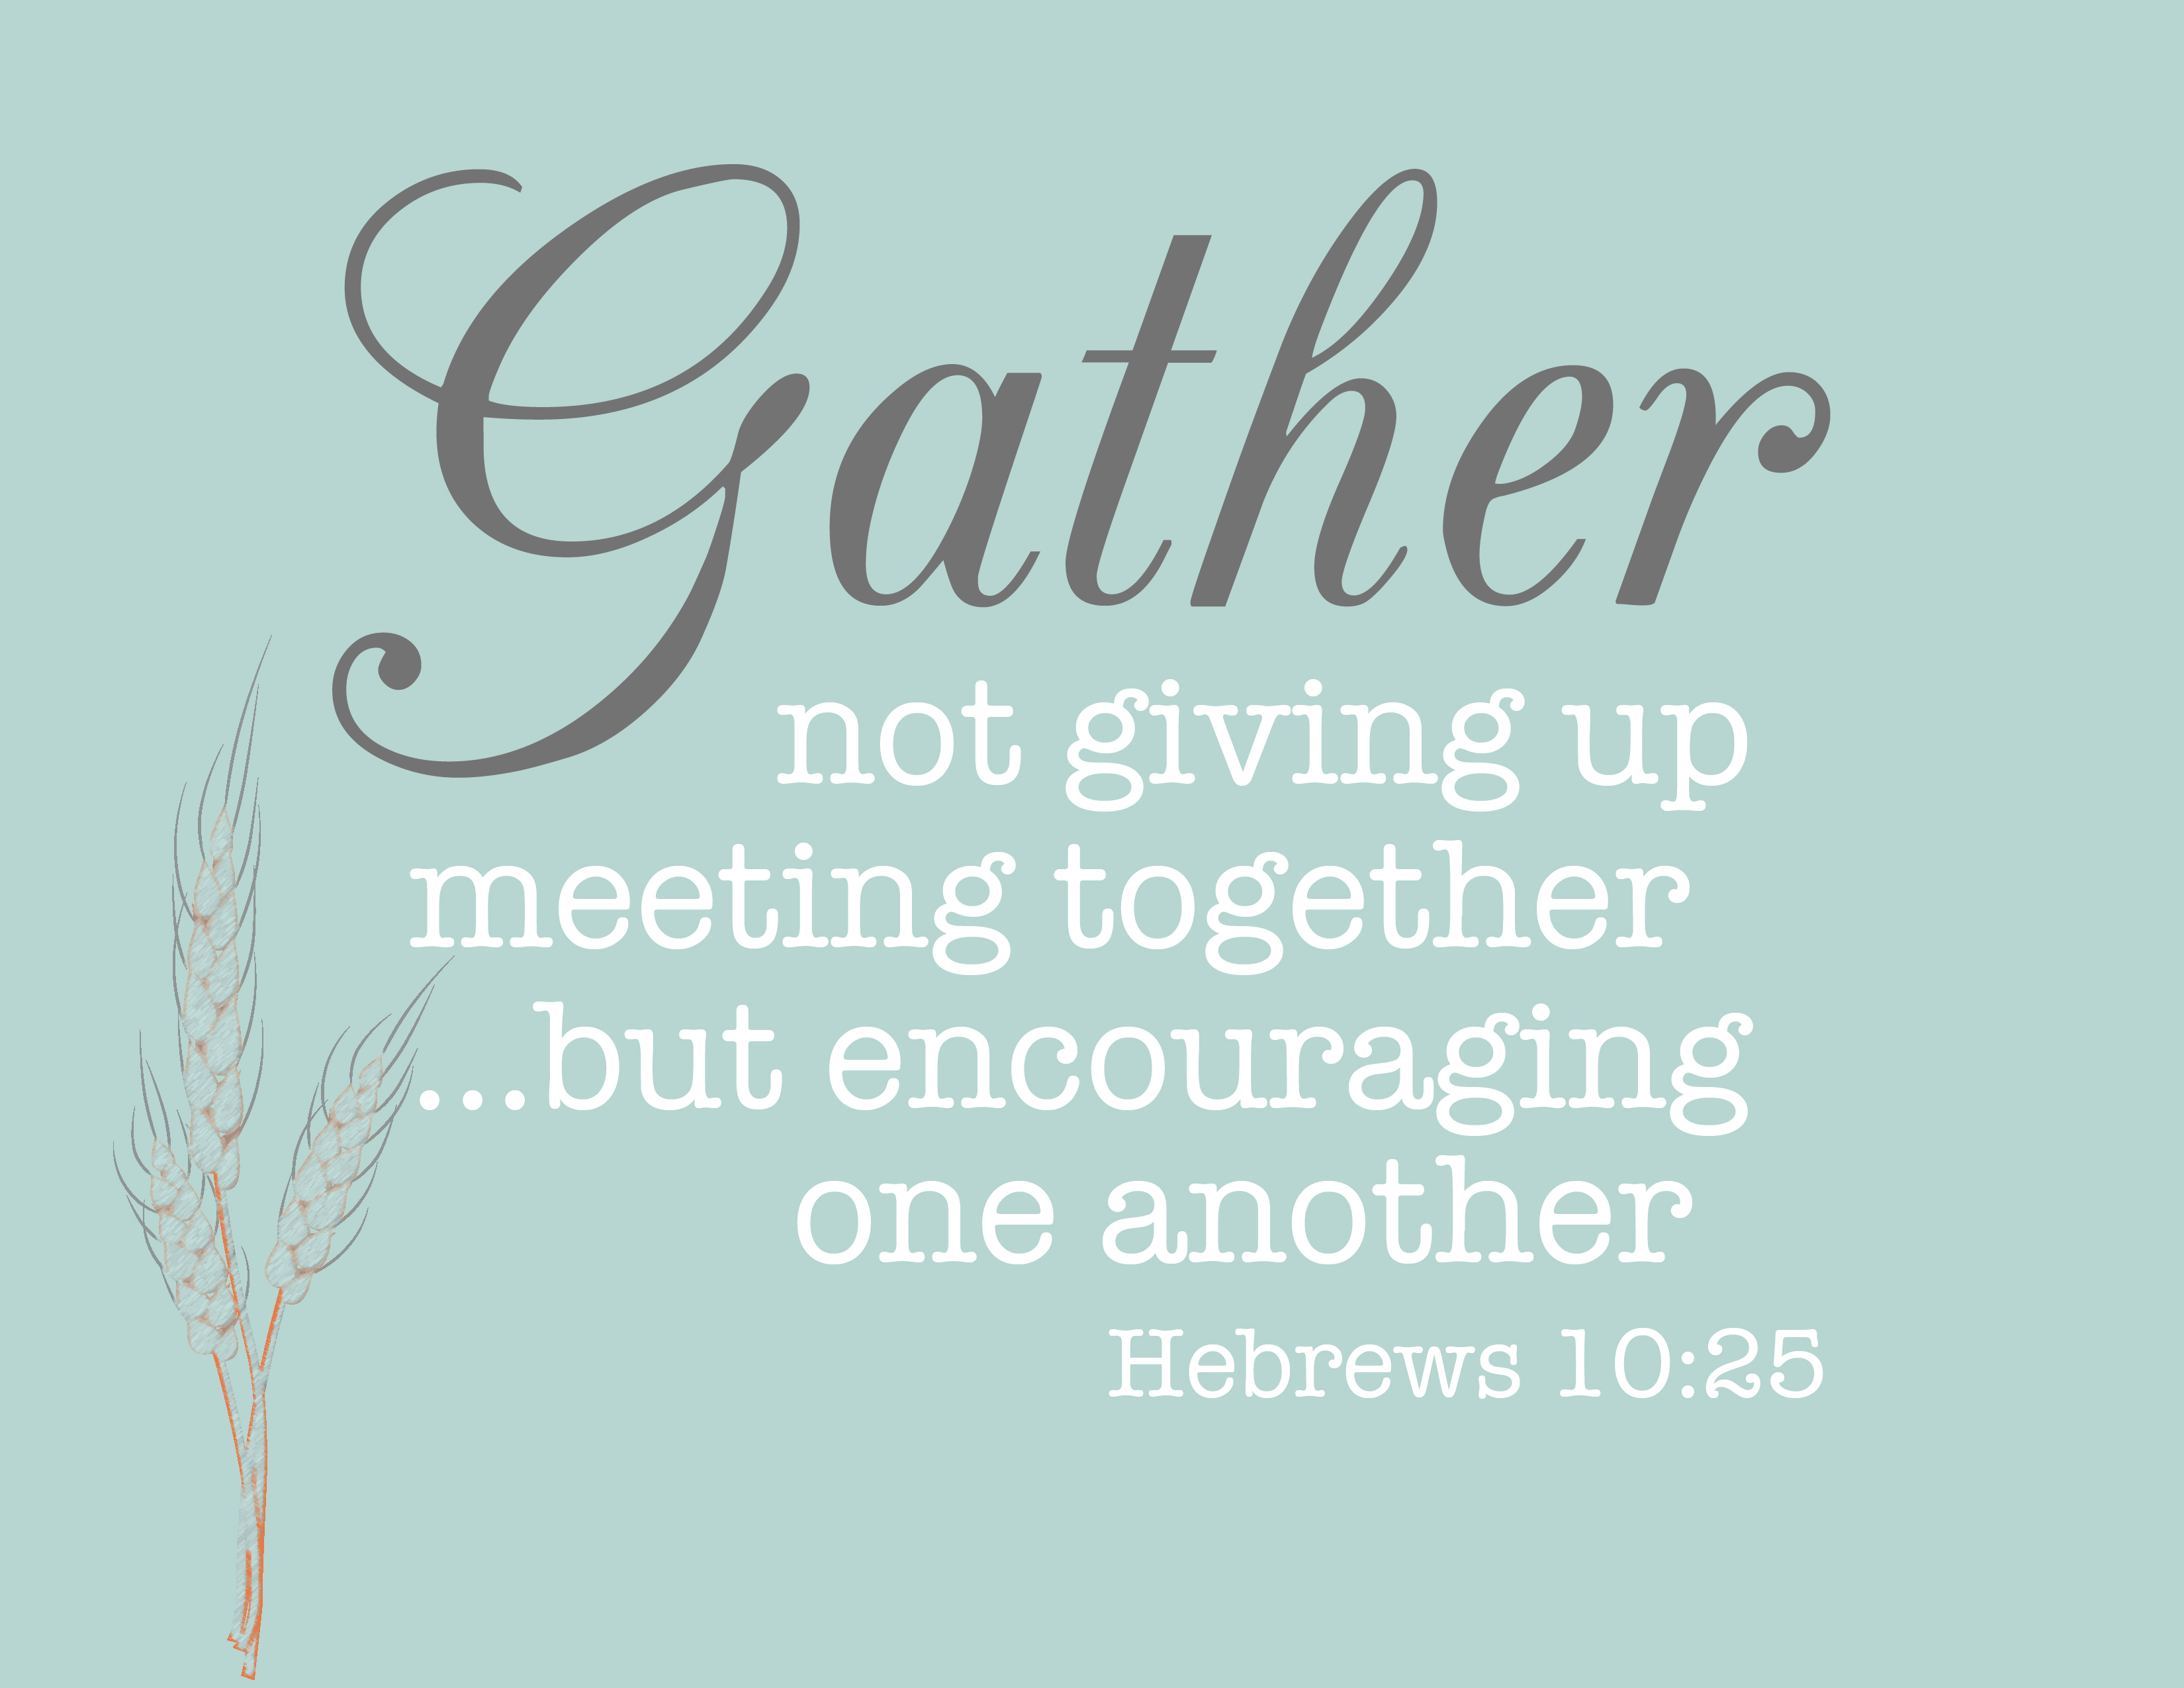 graphic regarding Gather Printable identify Drop Printables with Bible Verses: Fortunate, Collect, Thankful, Grateful